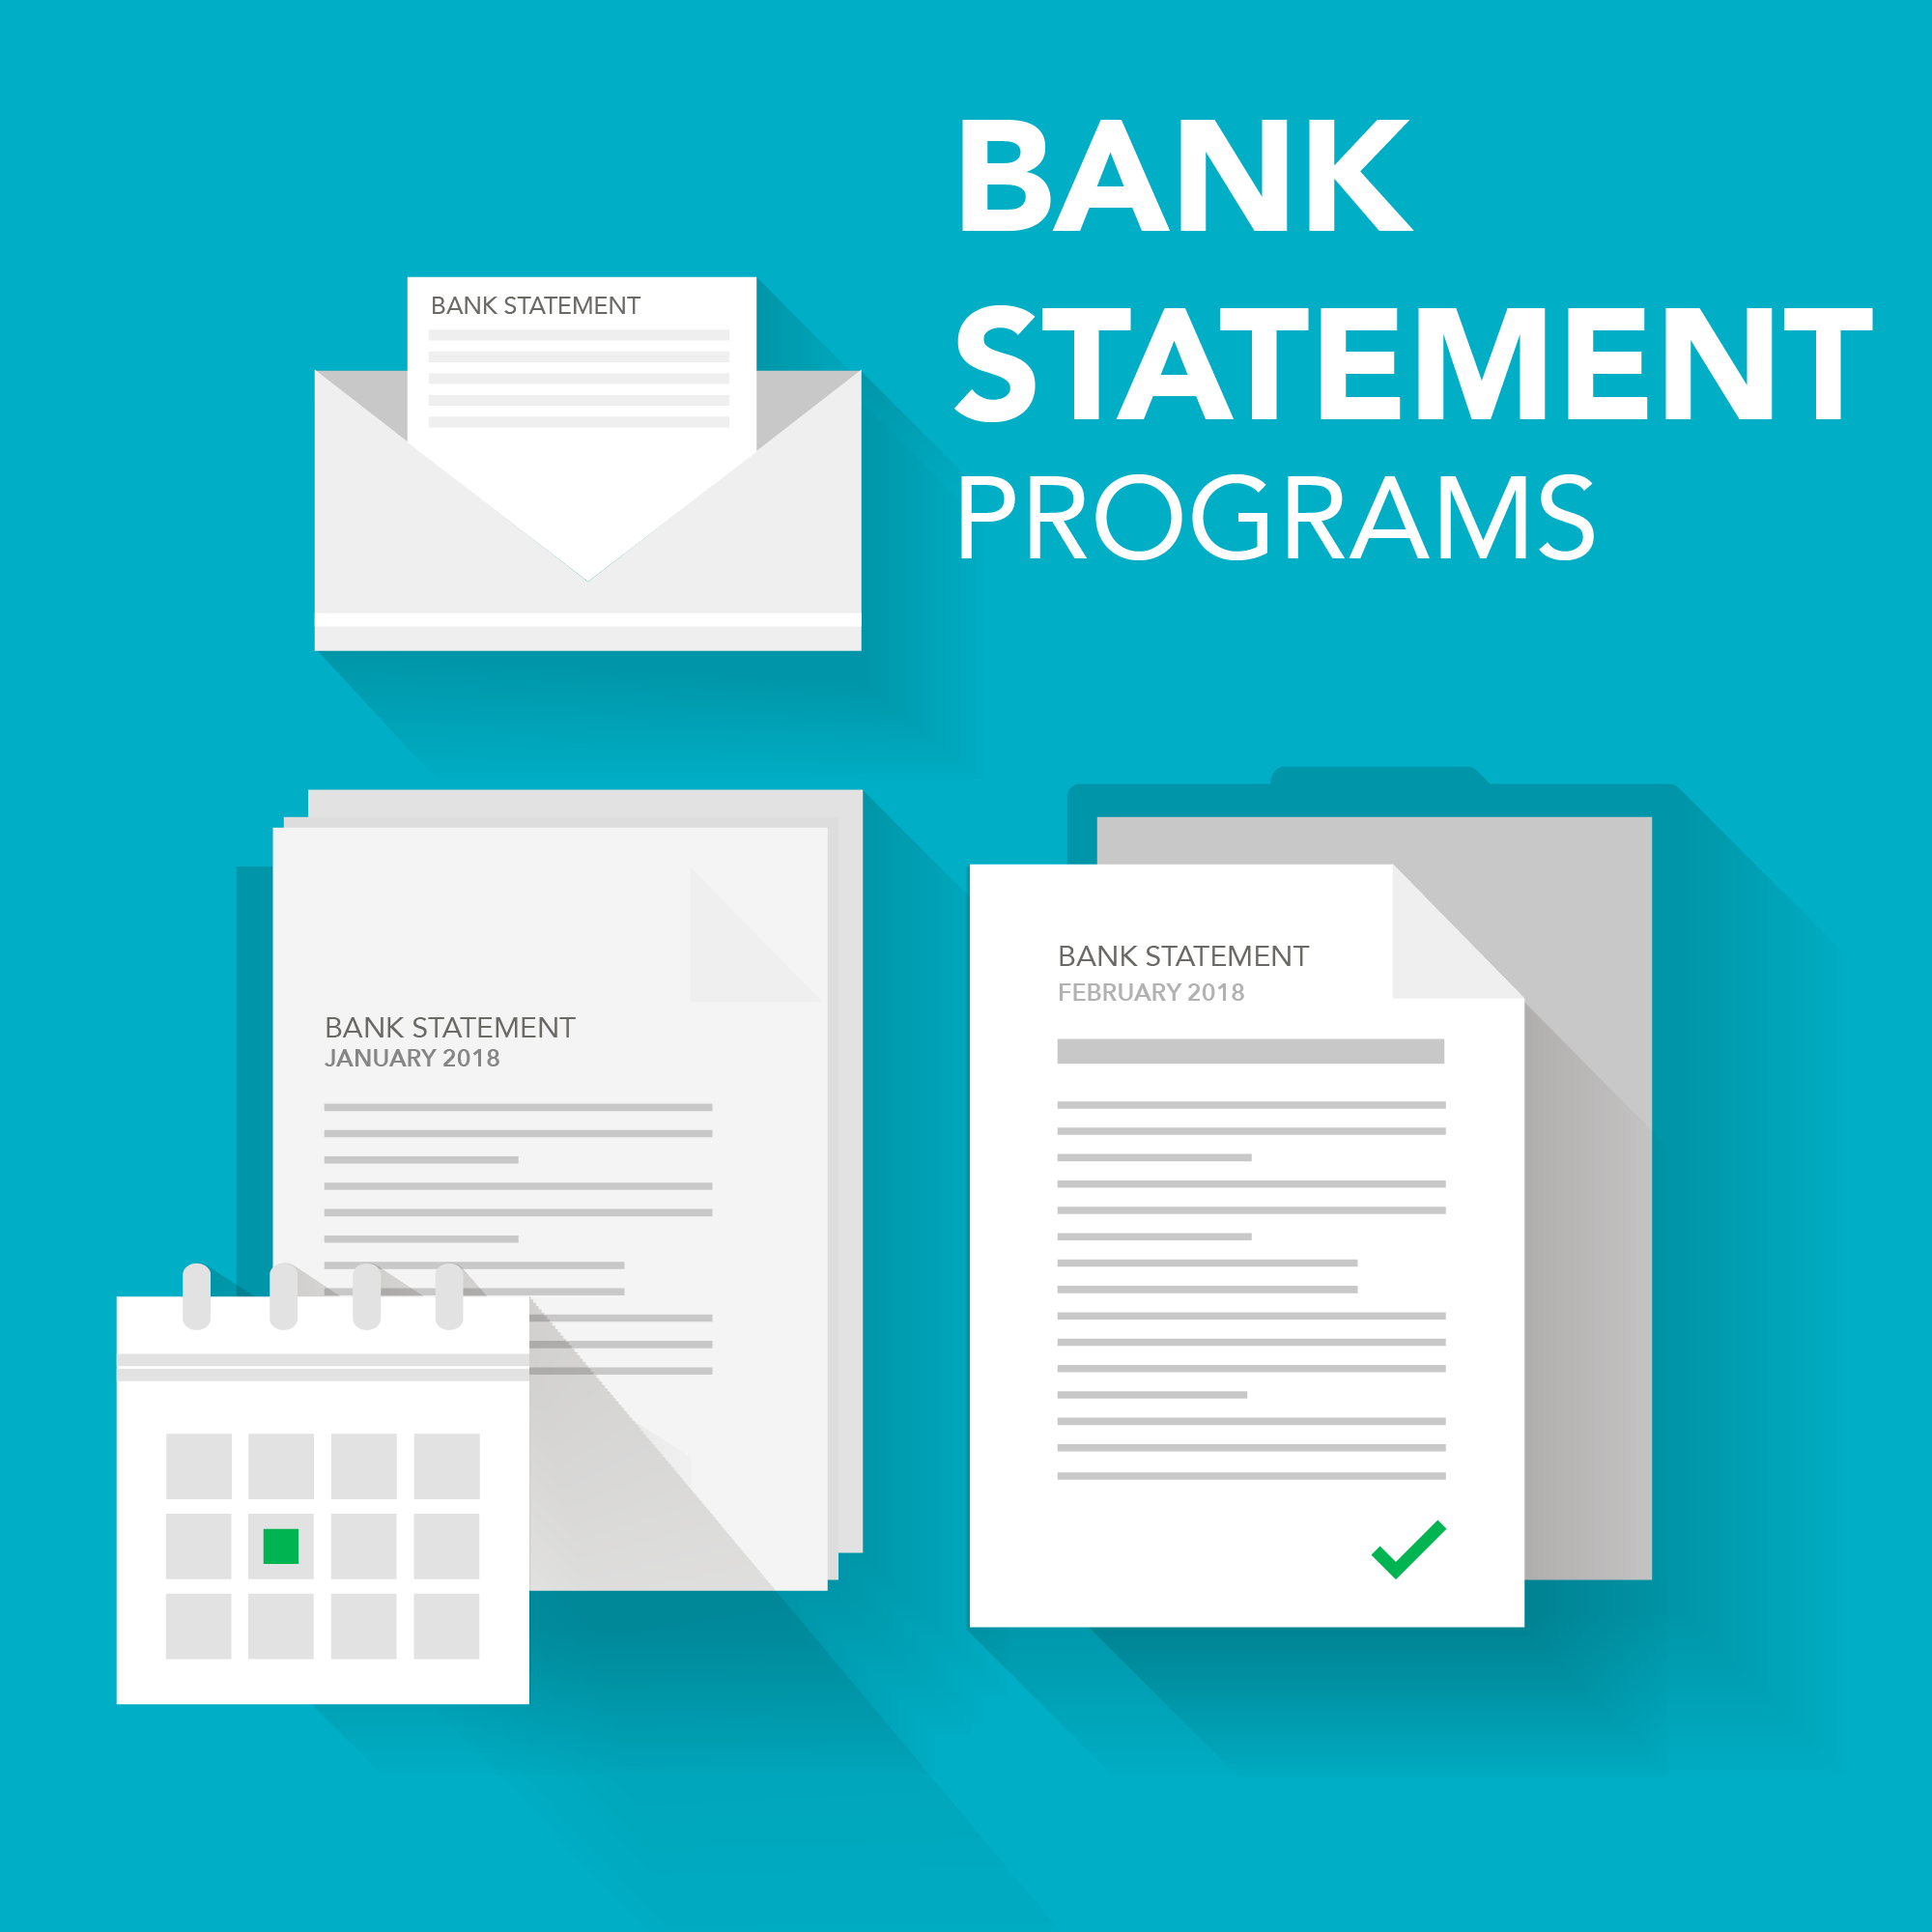 Bank Statement Programs | Products and Services | Nu Level Equity | Mortgage Services